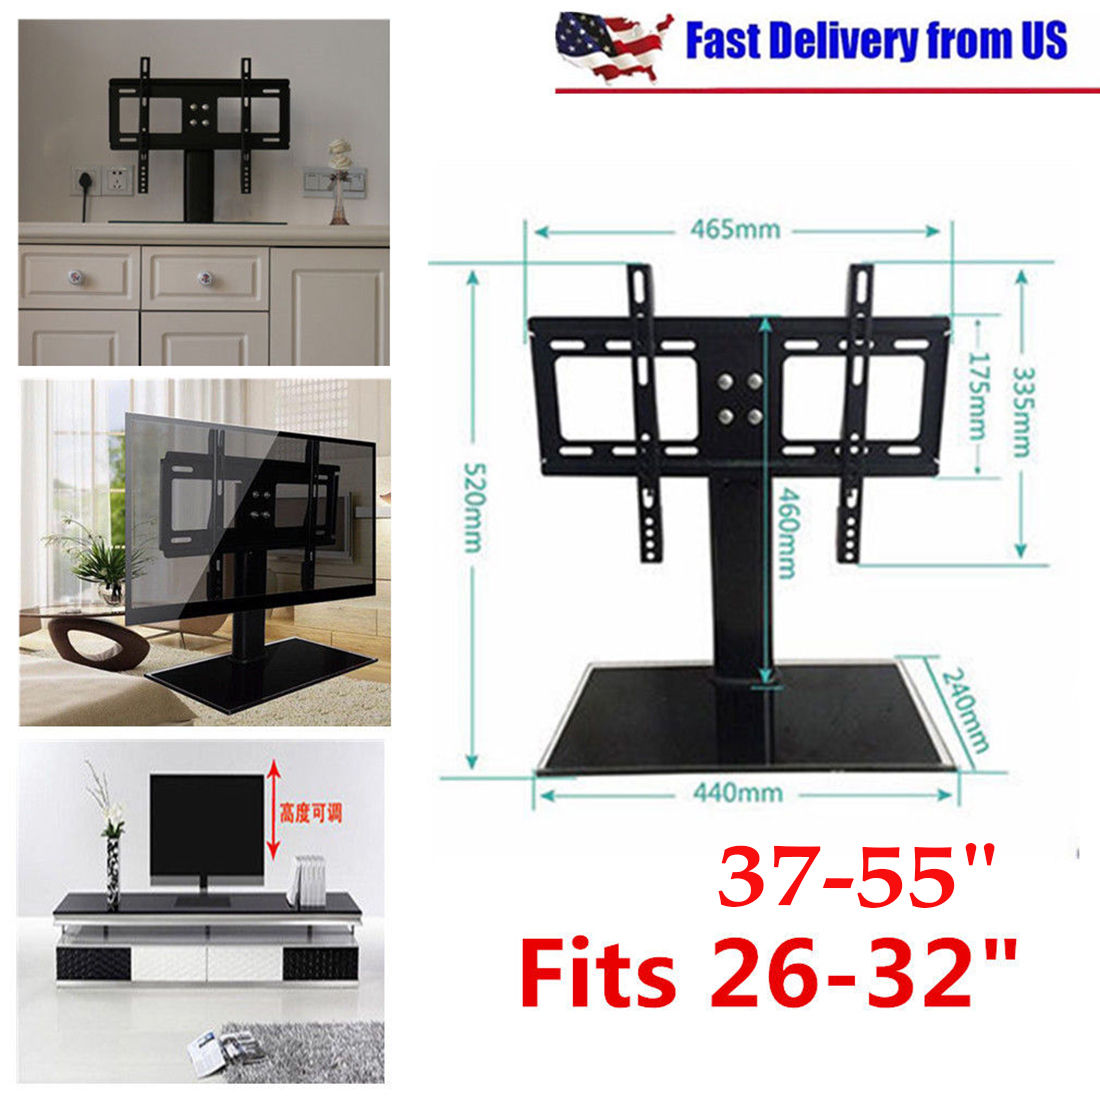 NEW High Quality Adjustable Universal TV Stand Pedestal Base Wall Mount Flat Screen TVs